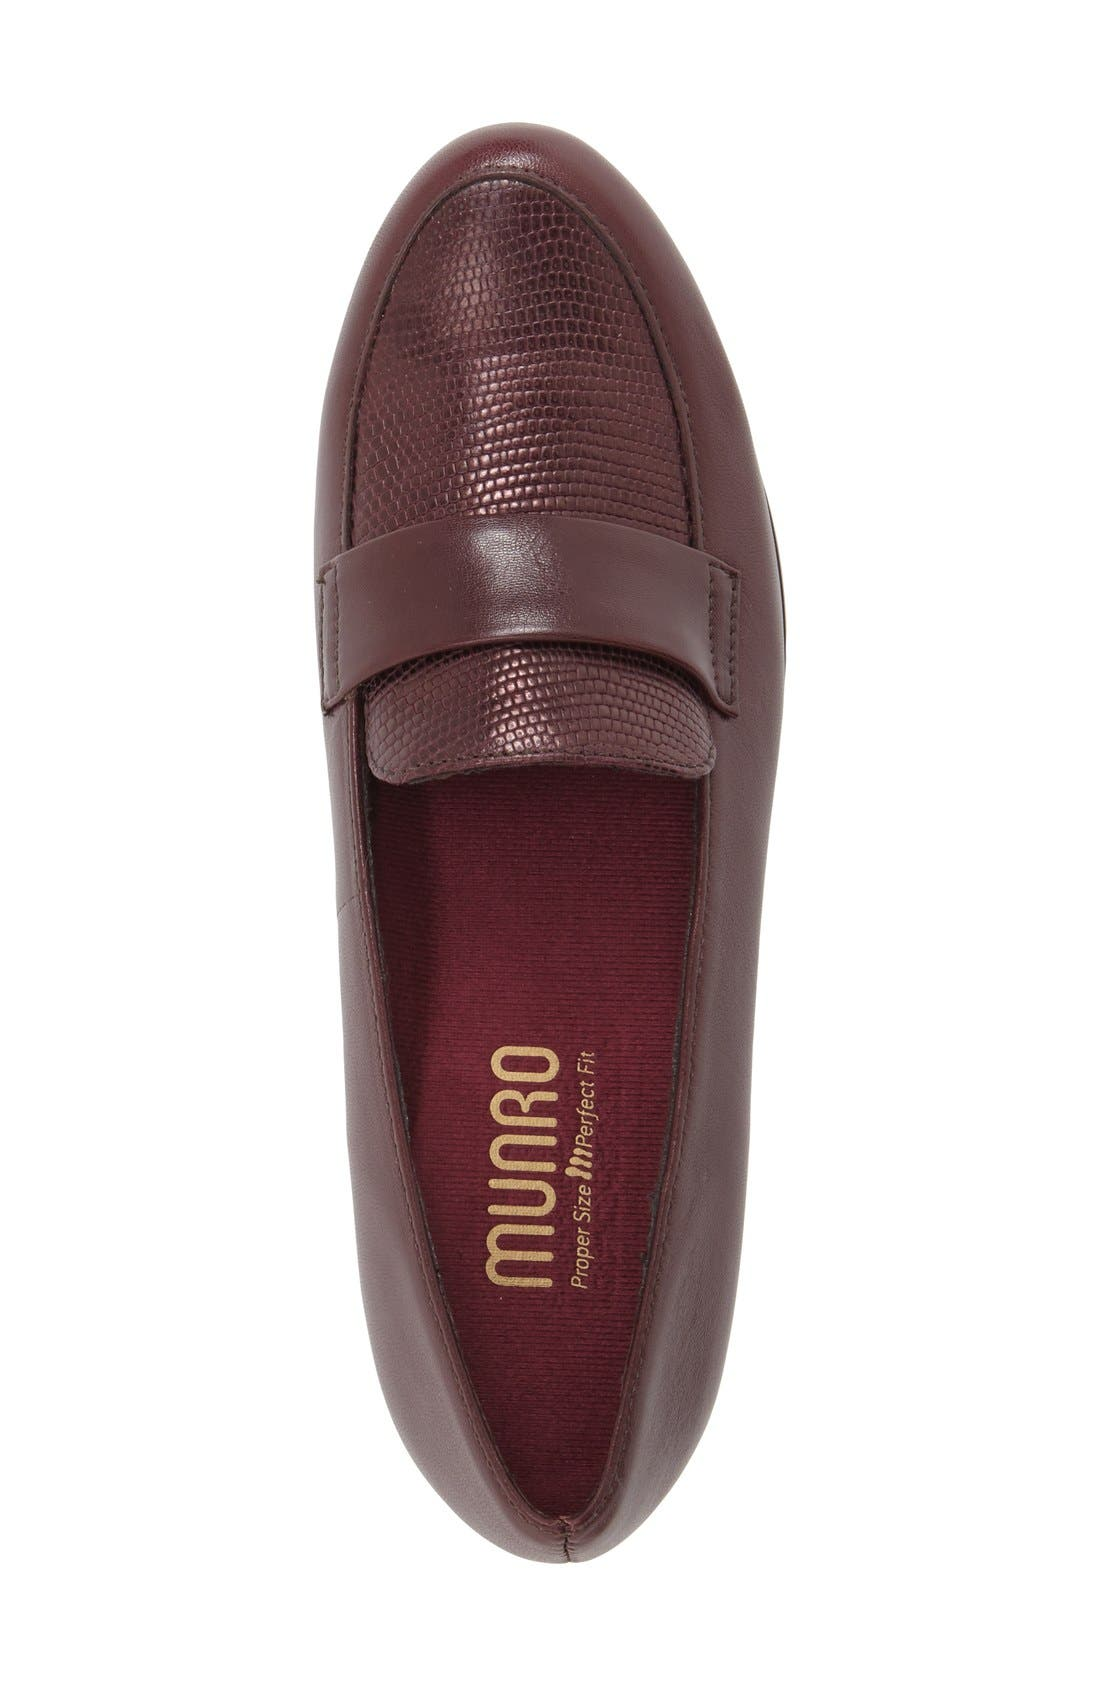 'Kiera' Loafer,                             Alternate thumbnail 3, color,                             Wine Lizard Print Leather